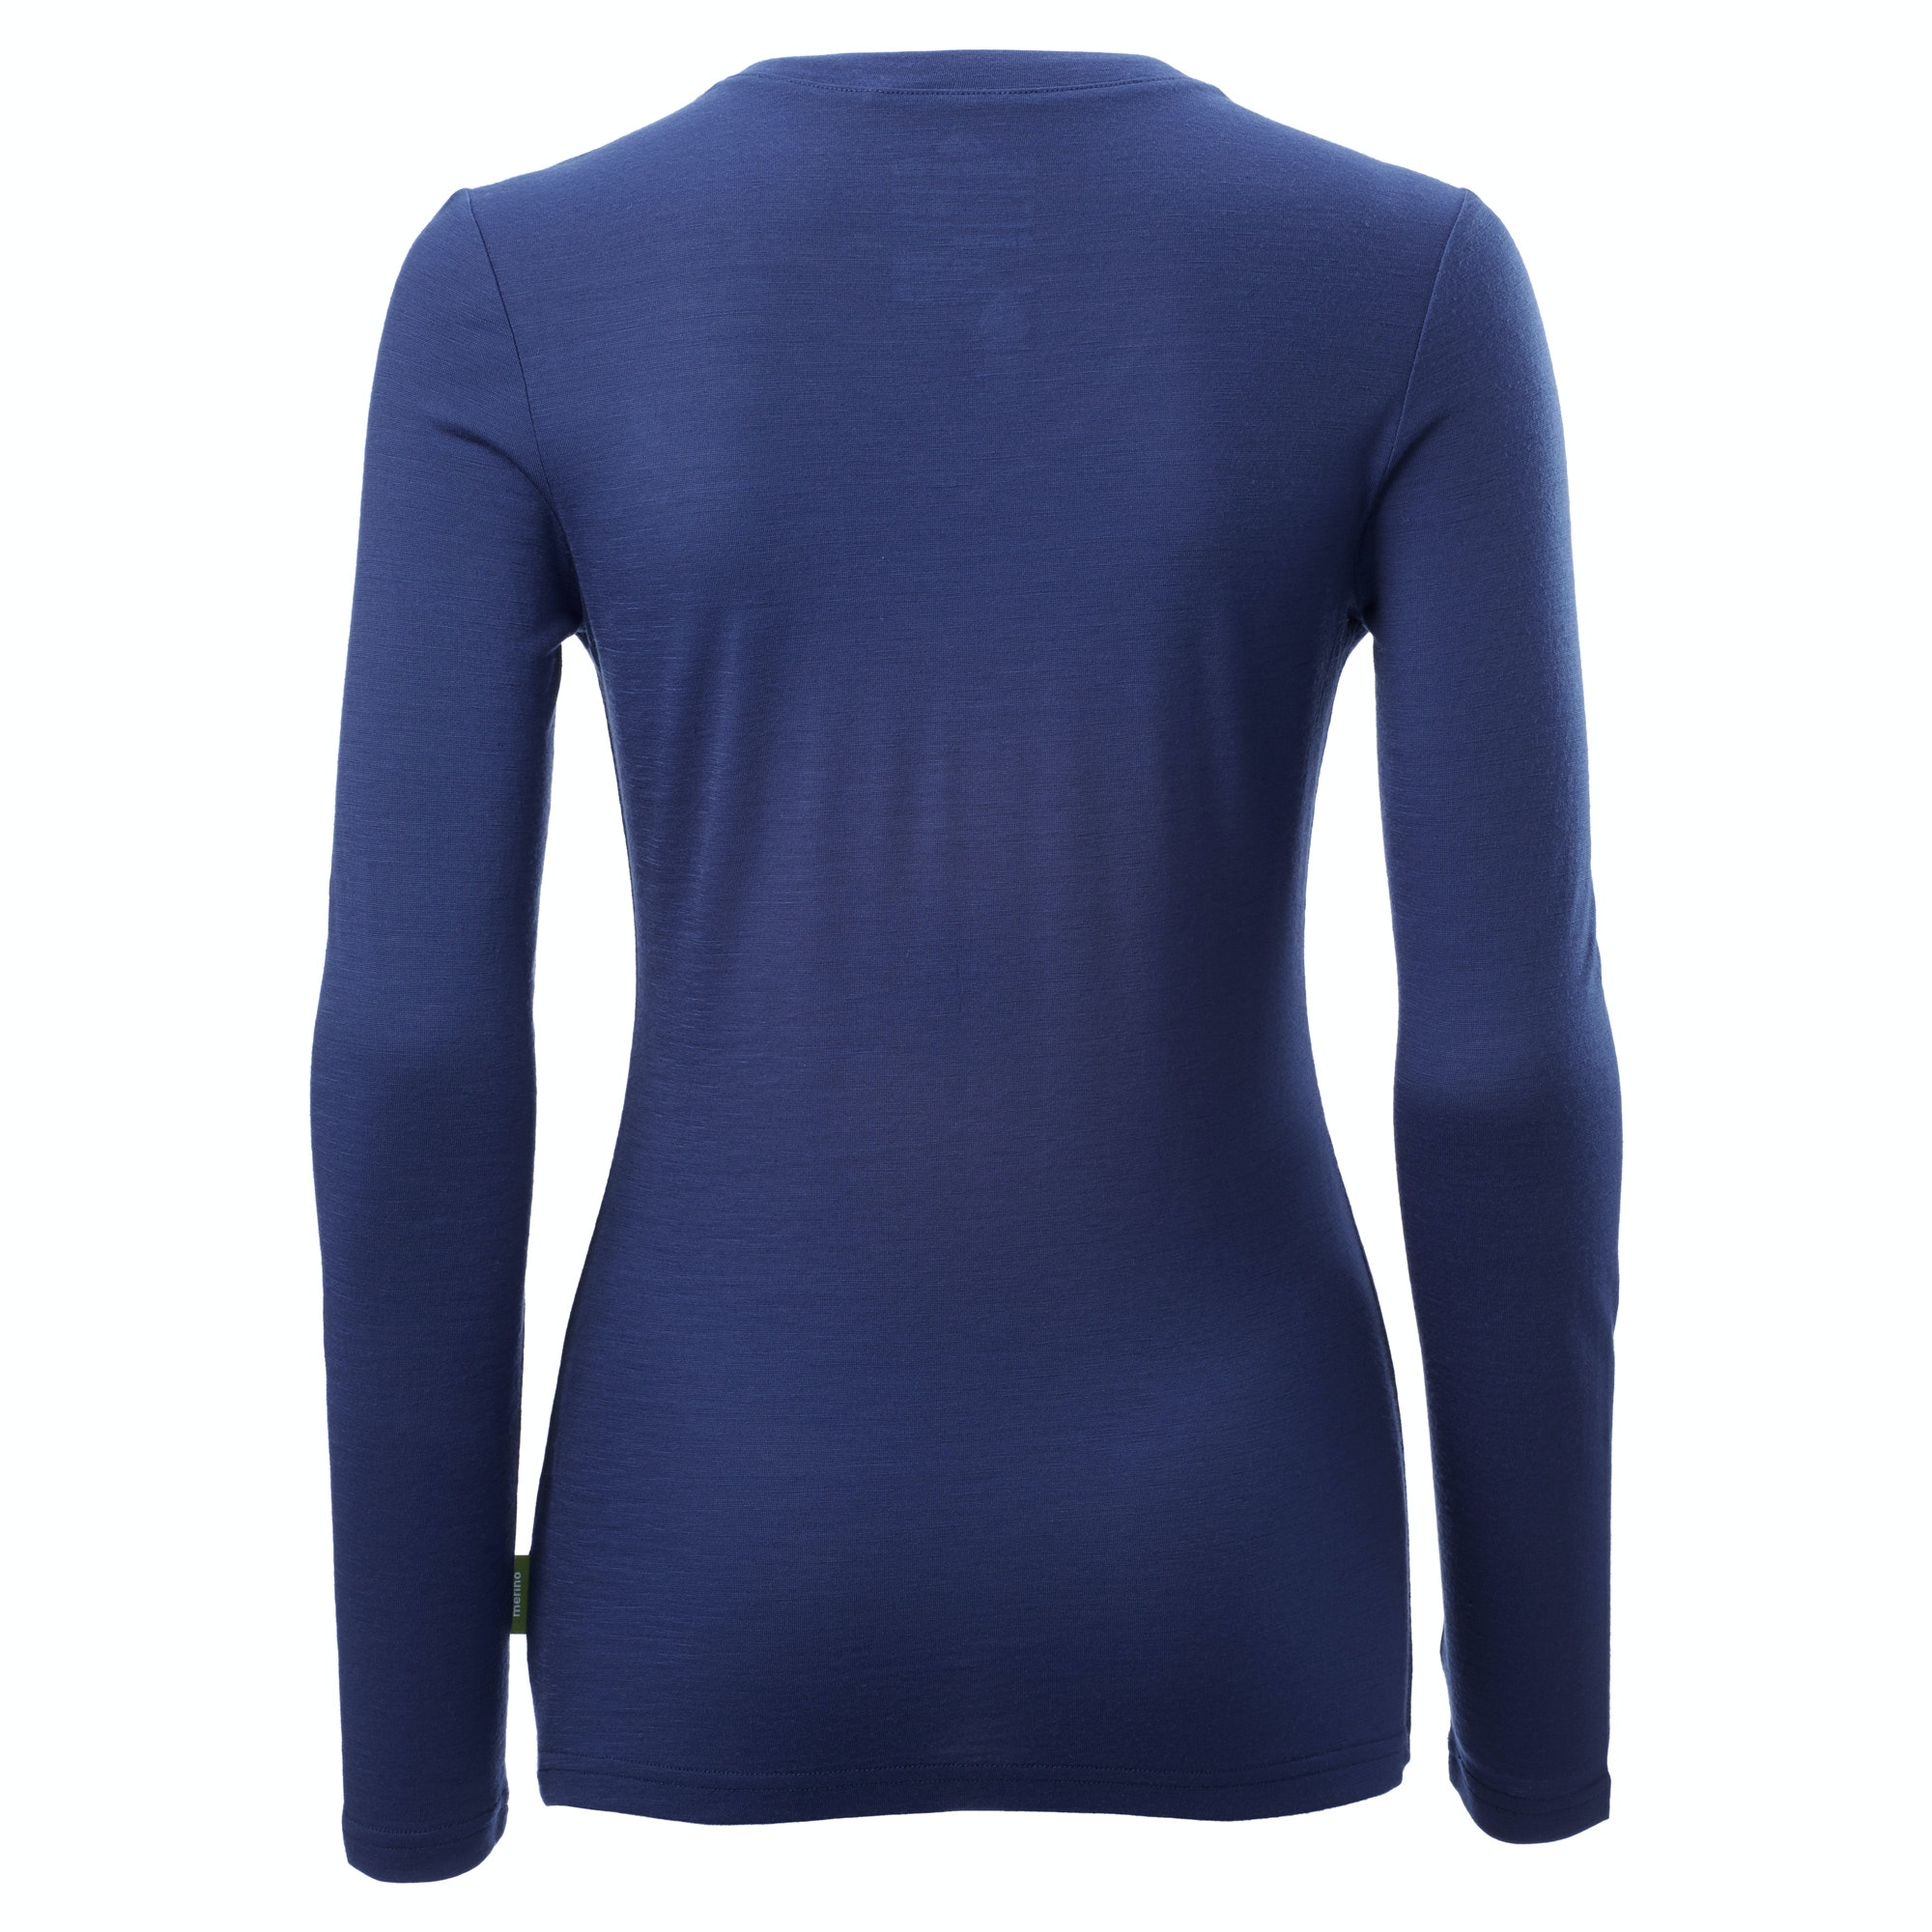 Divide merino wool v neck top women plum for Merino wool shirt womens